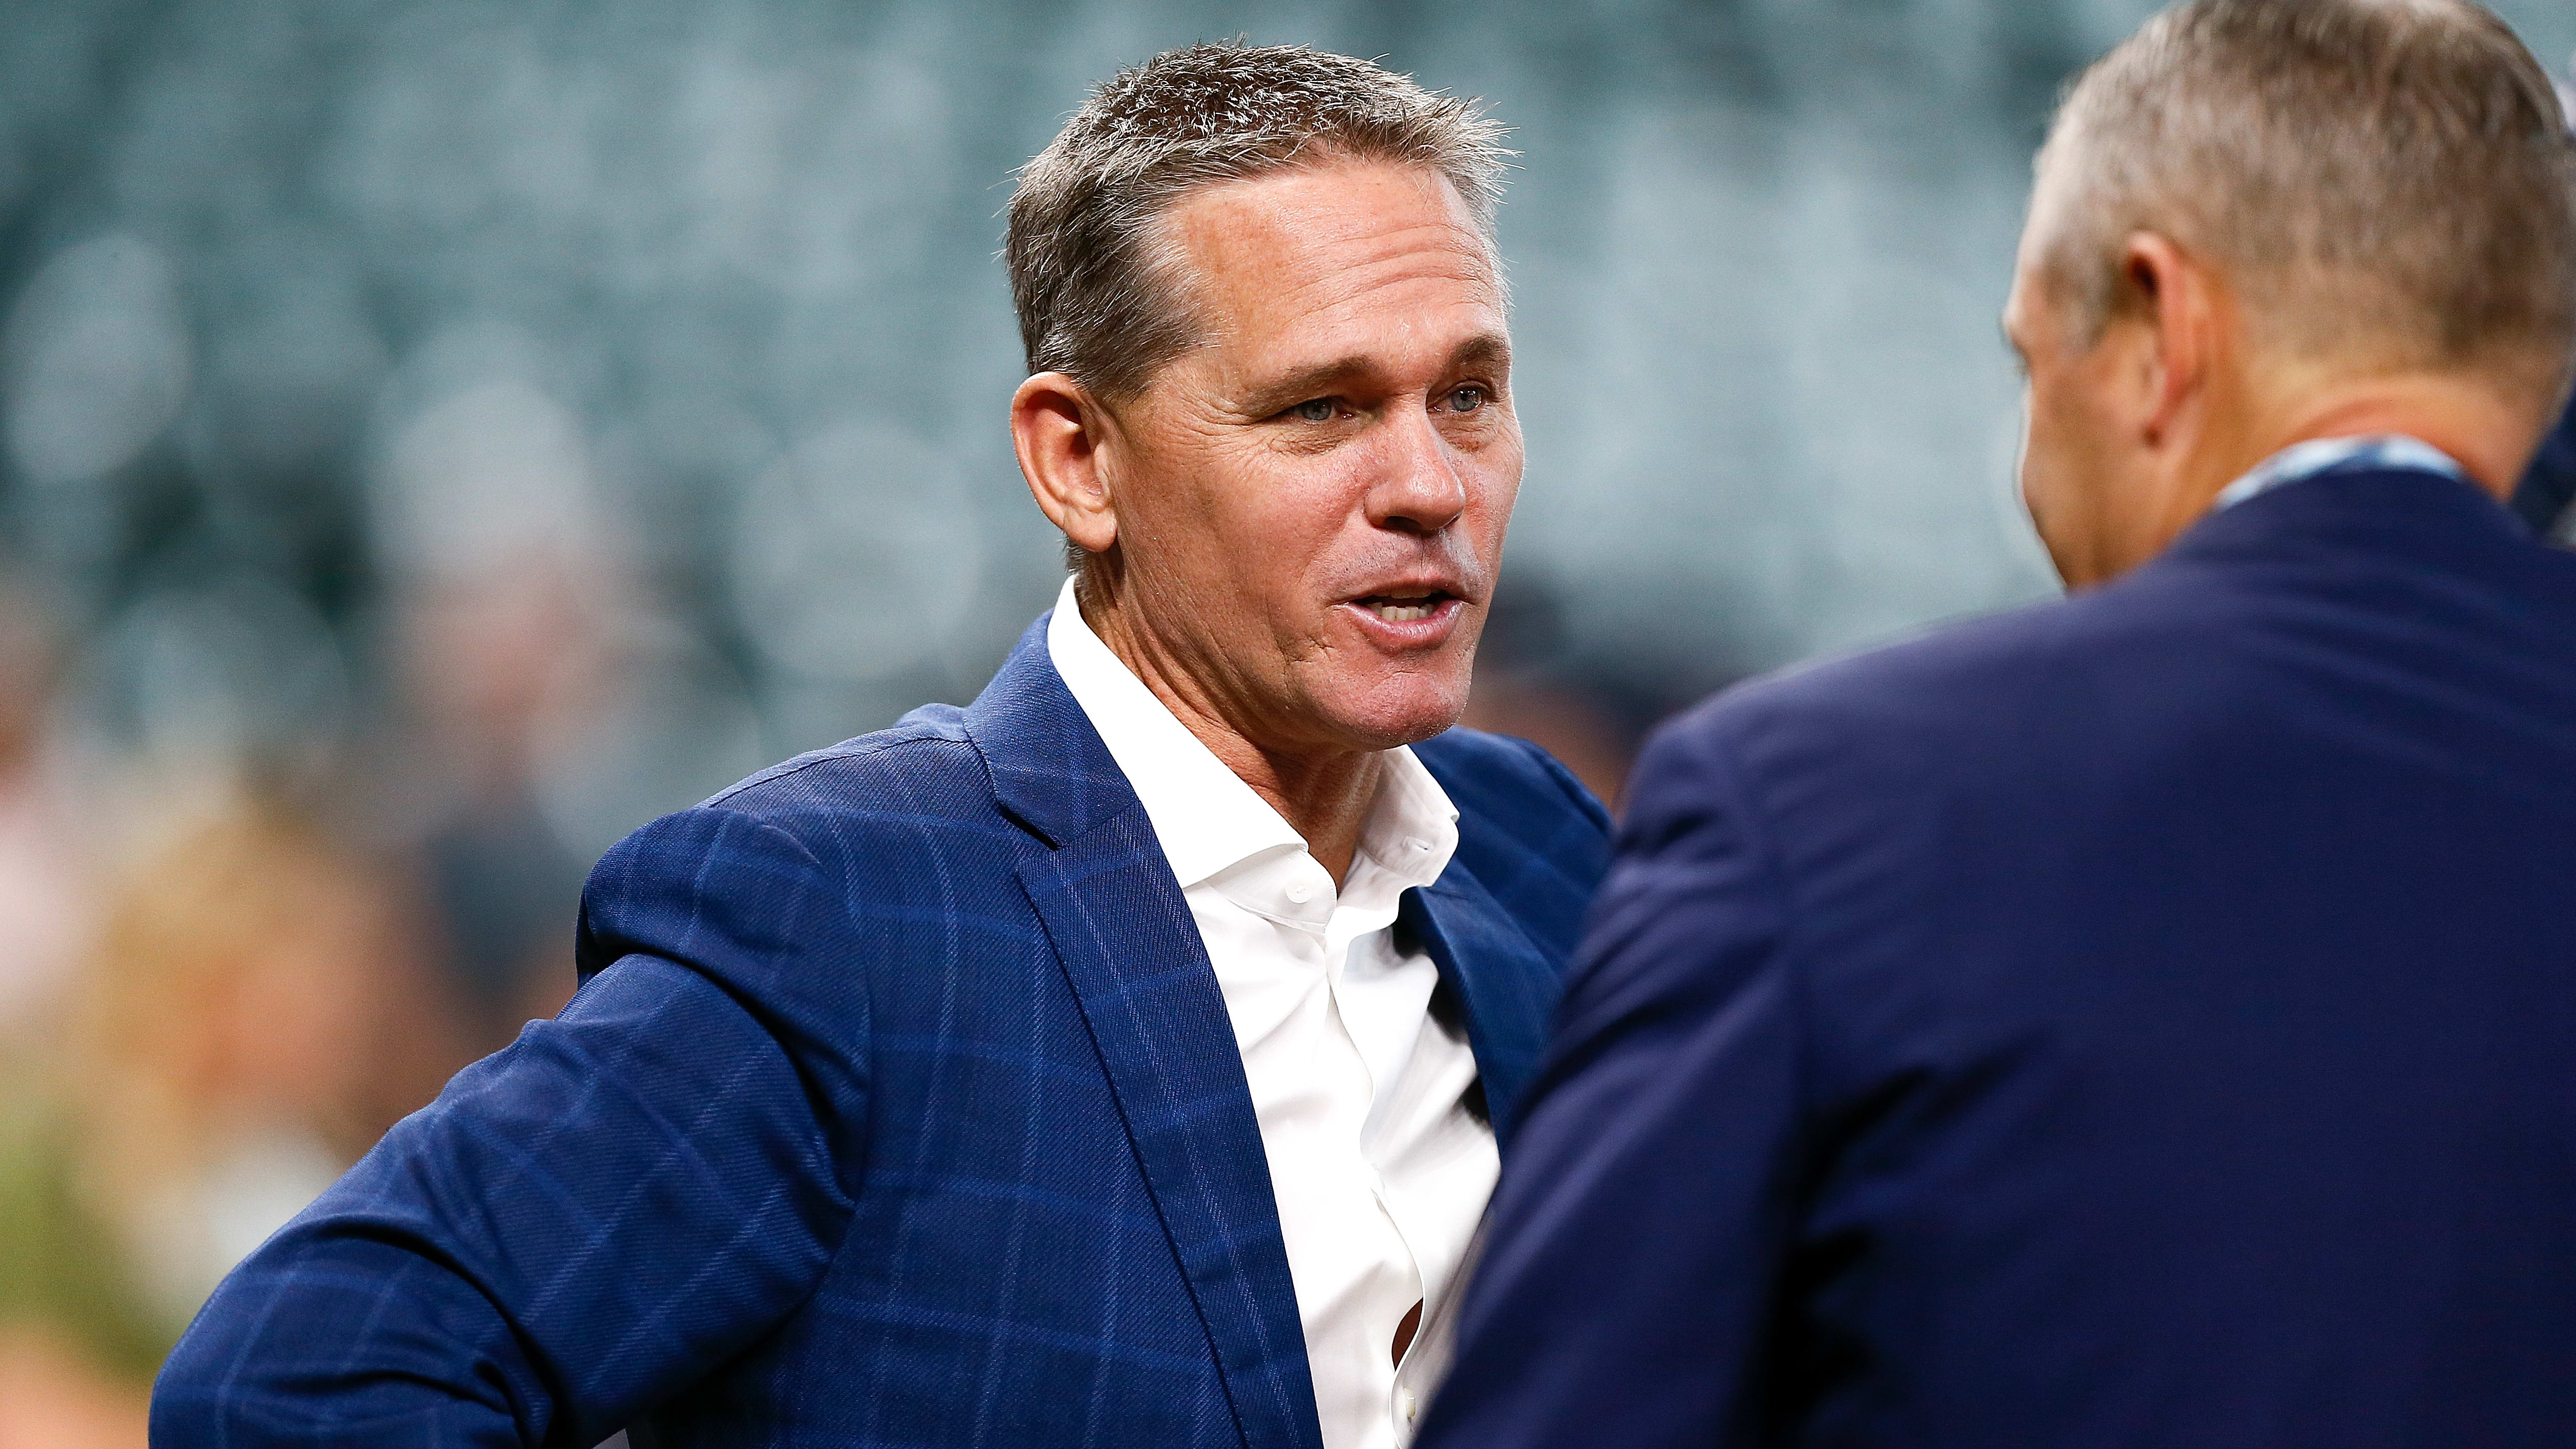 HOUSTON, TX - OCTOBER 06:  Hall of Famer and former Houston Astros player Craig Biggio talks with Houston Astros president Reid Ryan during batting practice prior to Game Two of the American League Division Series against the Cleveland Indians at Minute Maid Park on October 6, 2018 in Houston, Texas.  (Photo by Bob Levey/Getty Images)